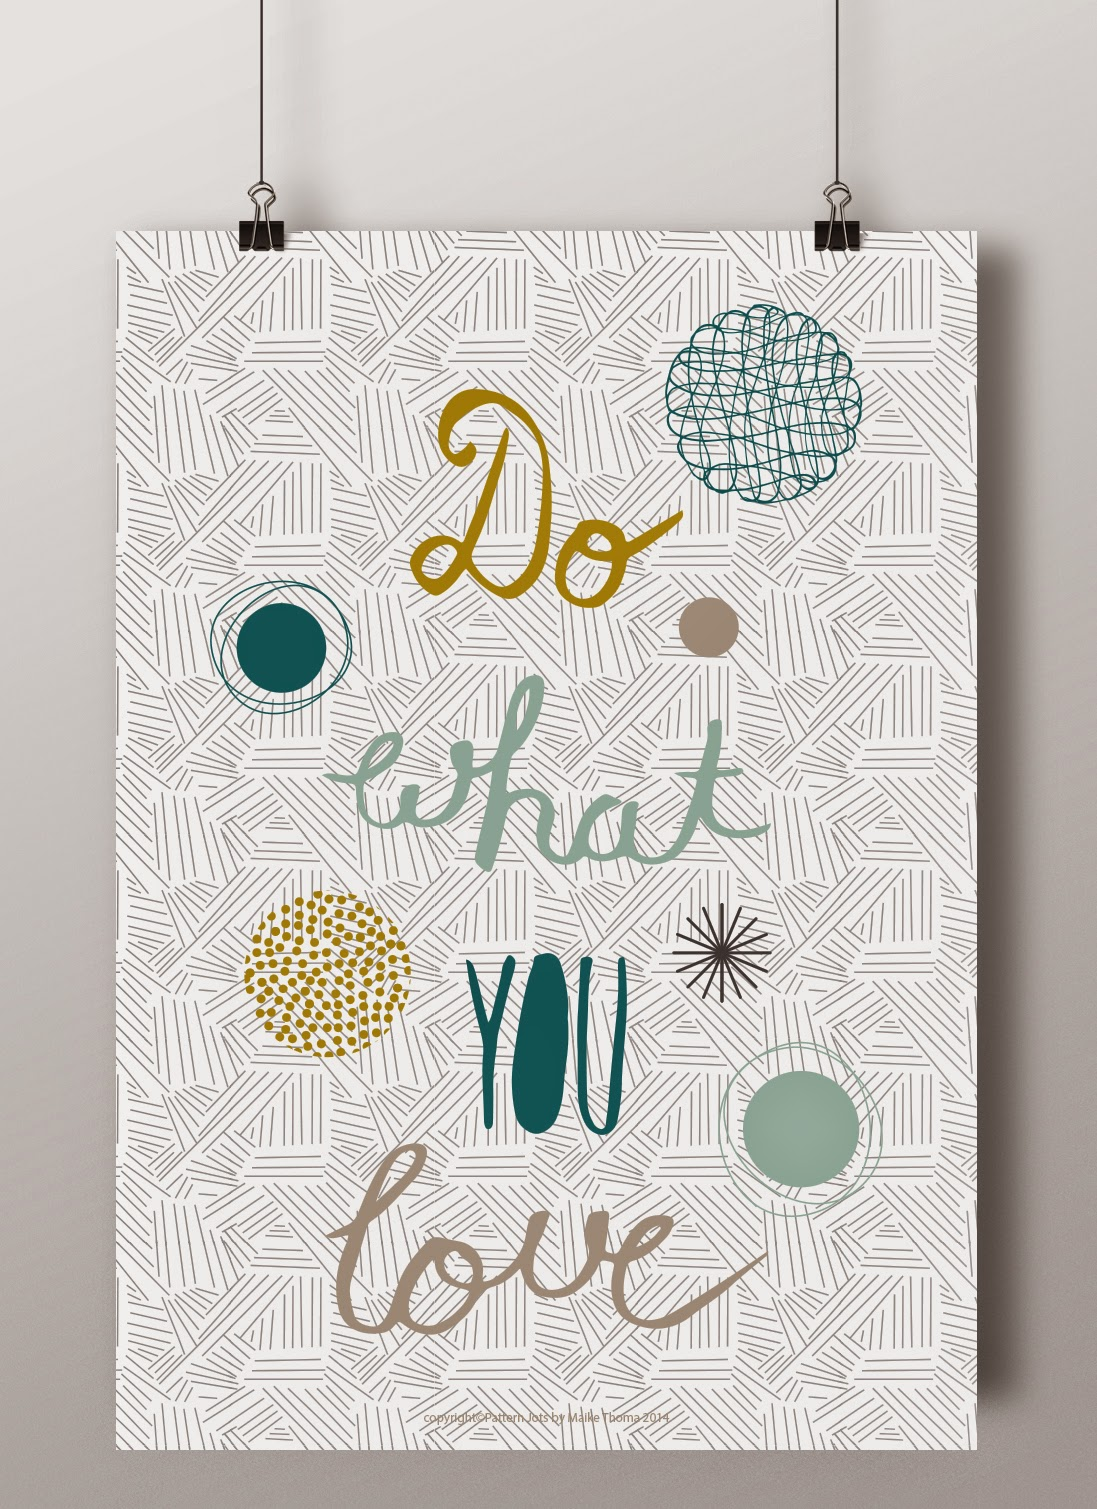 Do What YouLove Wall Art, copyright©Pattern Jots by Maike Thoma 2014